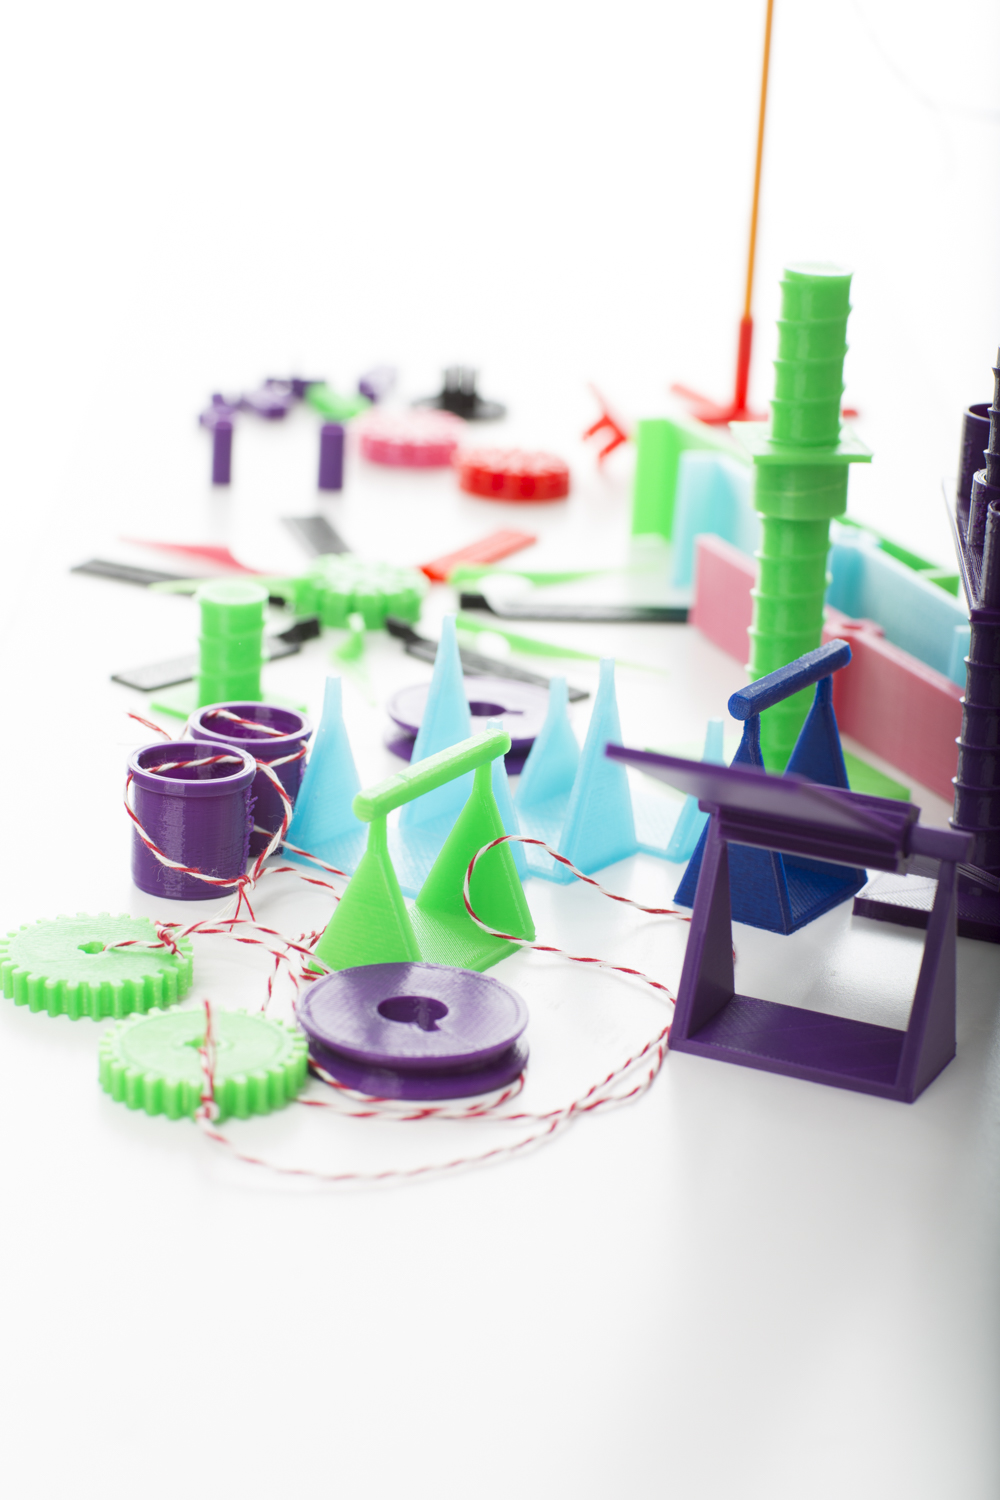 3d Printing Enables Students To Rapidly Design And